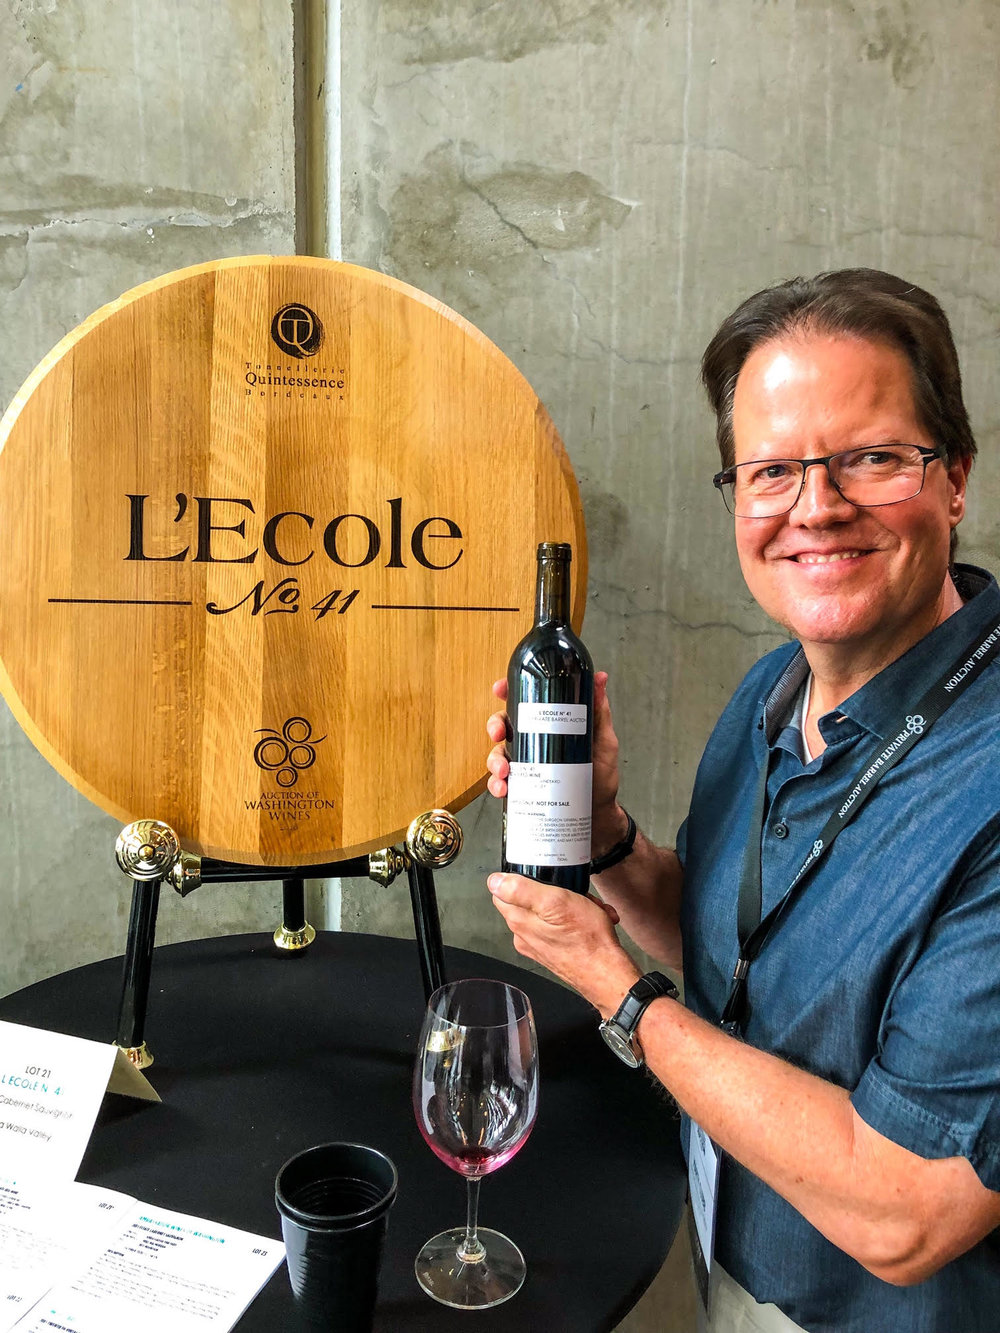 Marty Clubb, L'Ecole No. 41 owner and managing winemaker, has been pivotal in helping his winery gain national attention for their fantastic lineup of red and white wines.